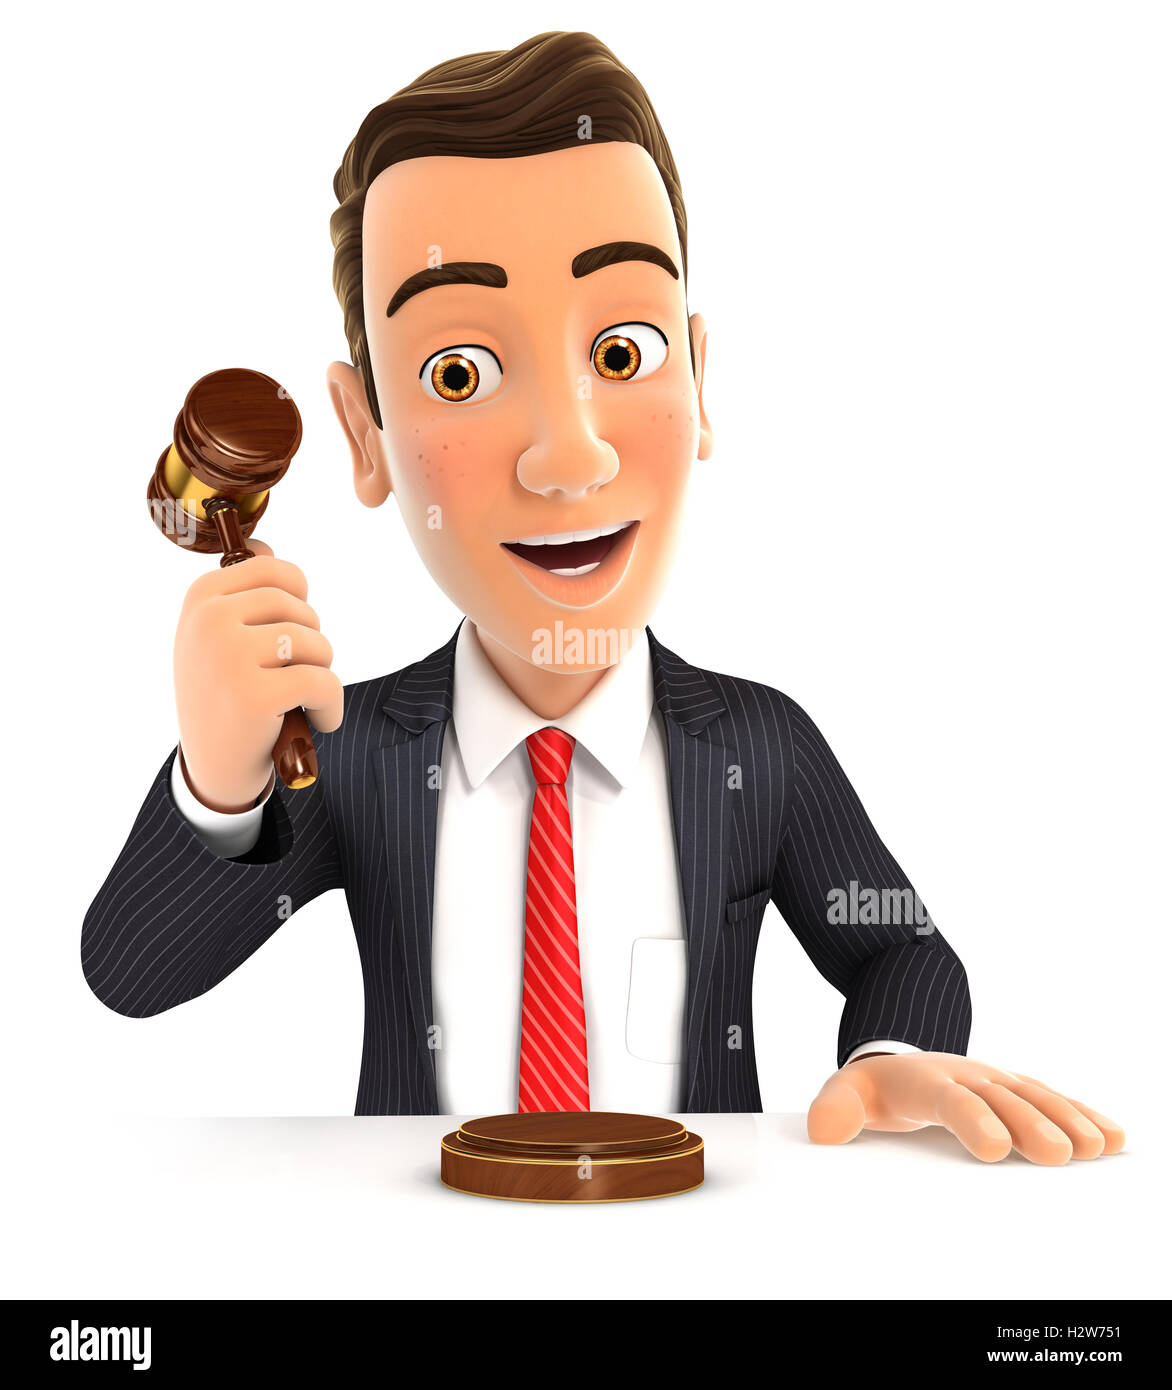 3d businessman hitting gavel, illustration with isolated white background Stock Photo